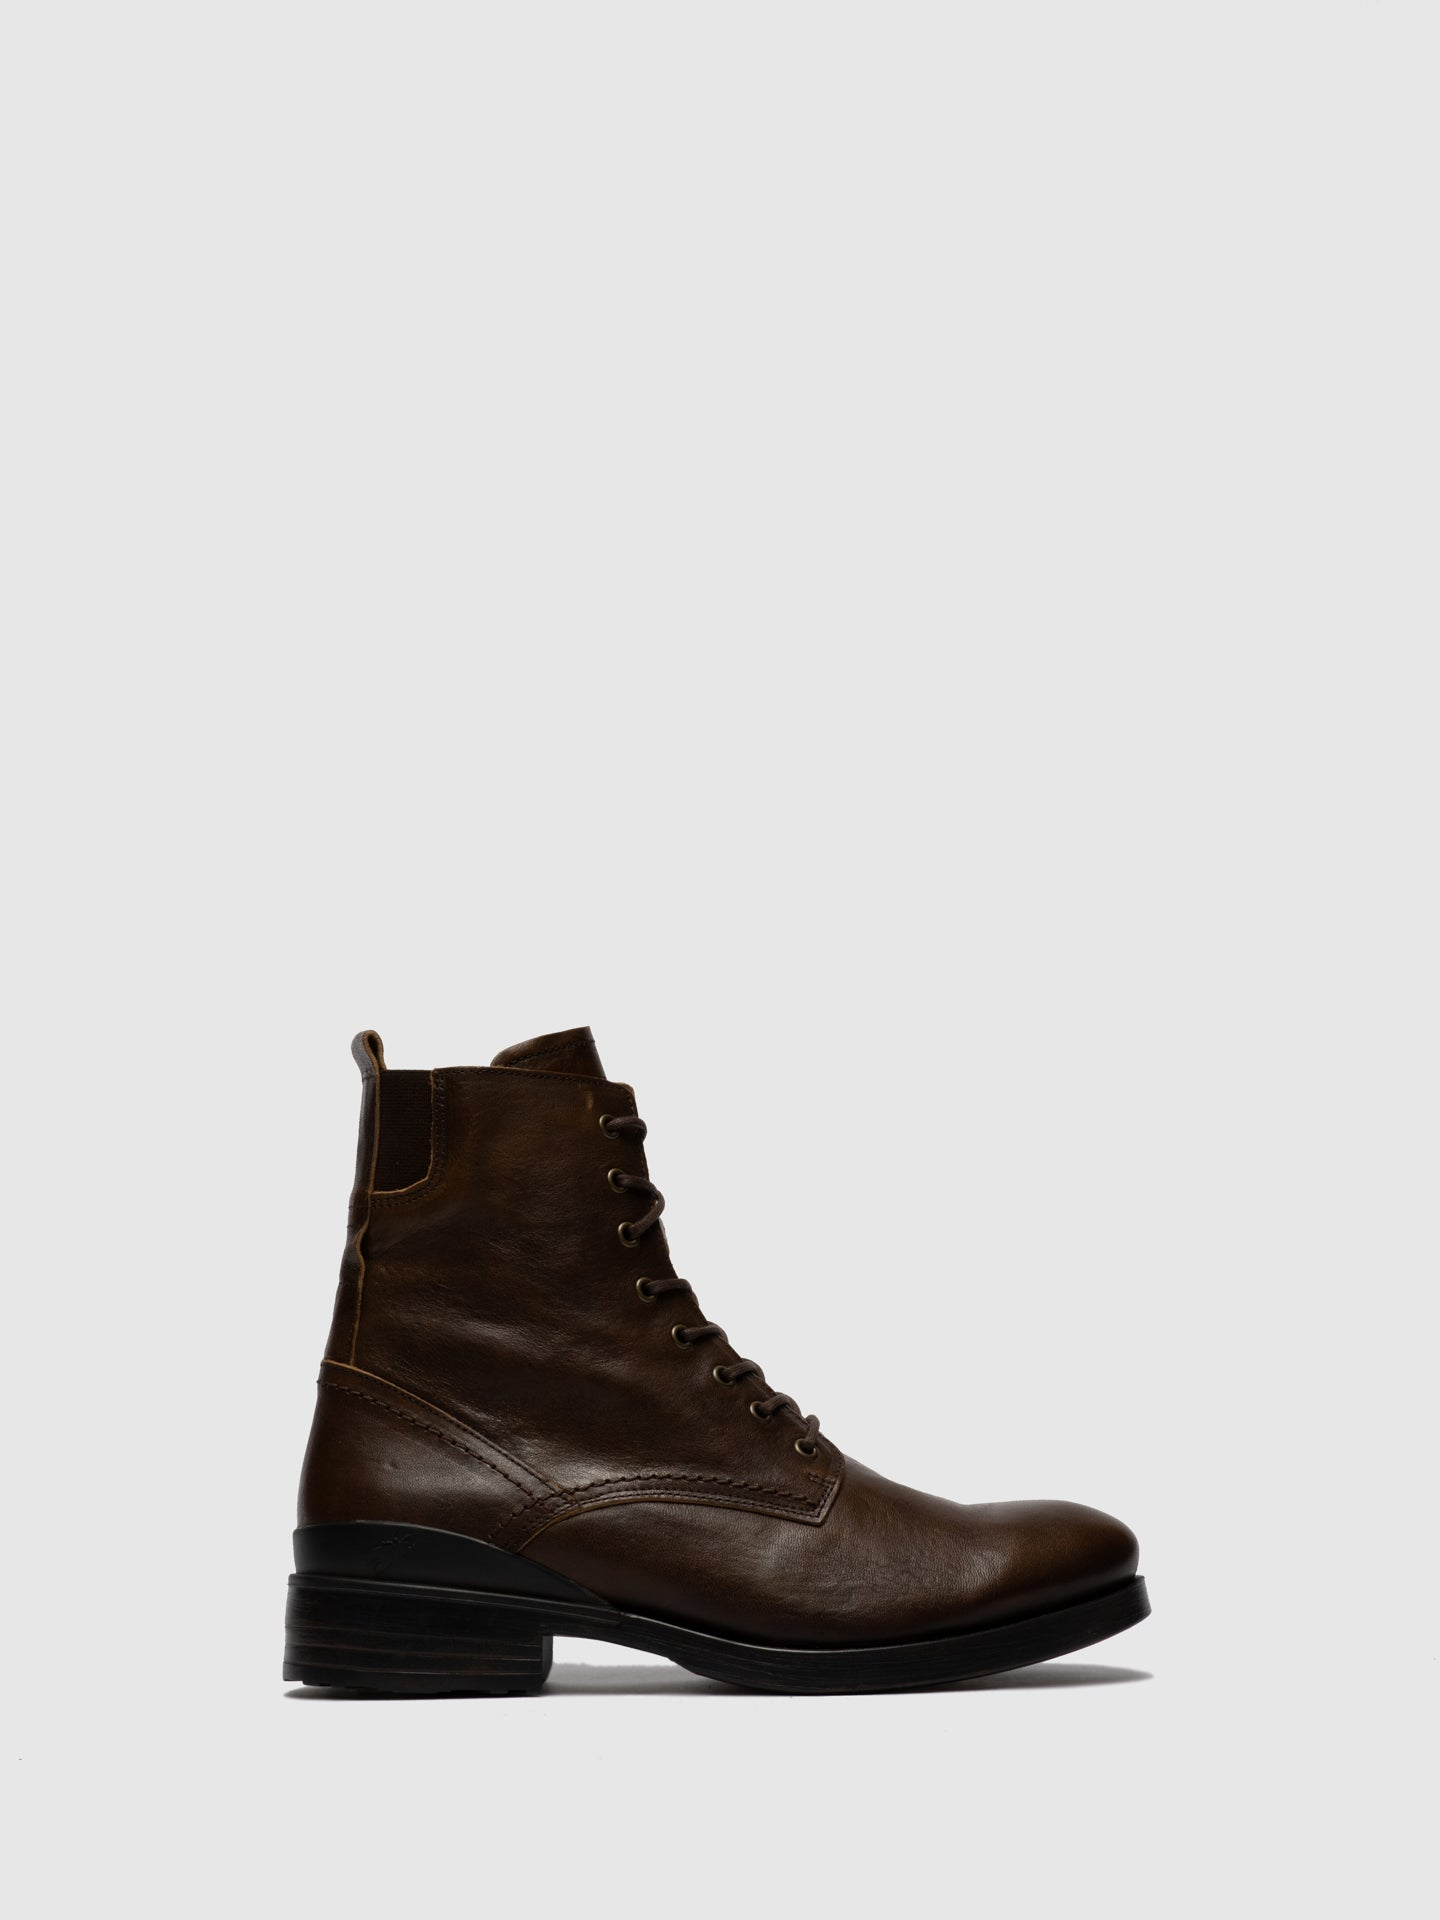 Fly London Lace-up Ankle Boots MORS650FLY ESTIGMA(VEGETAL) BROWN